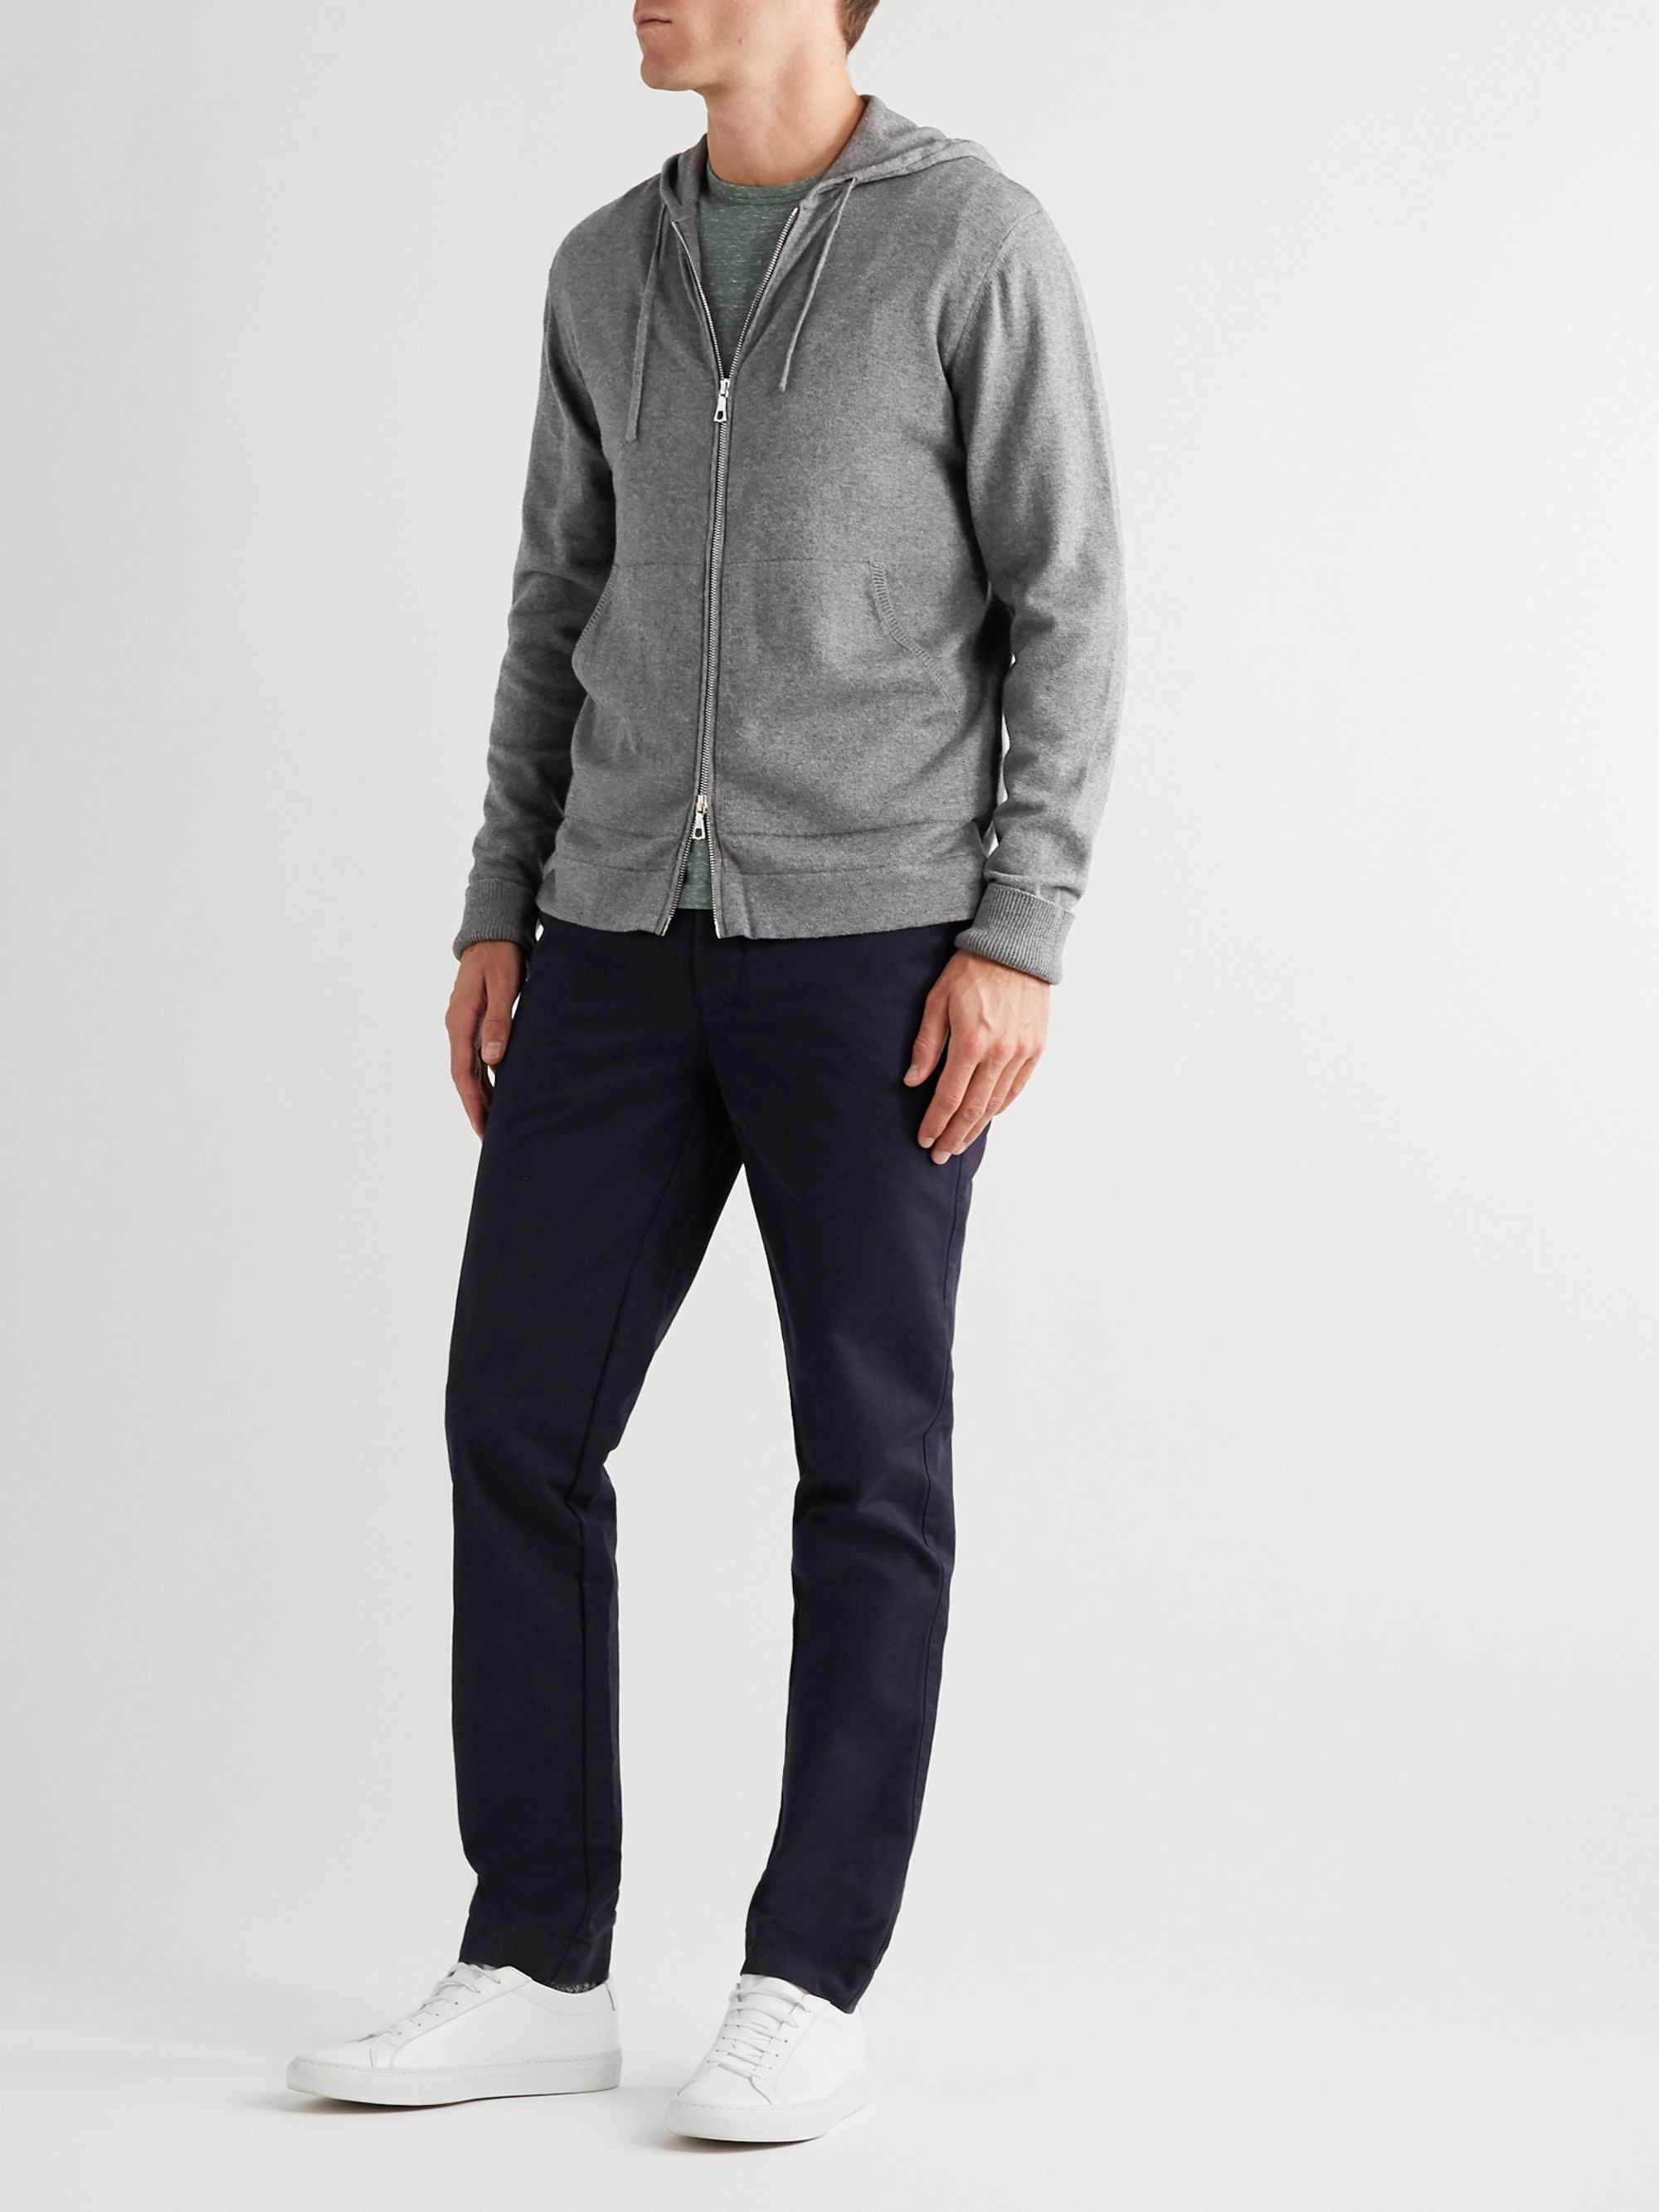 Officine Générale Cotton and Wool-Blend Zip-Up Hoodie